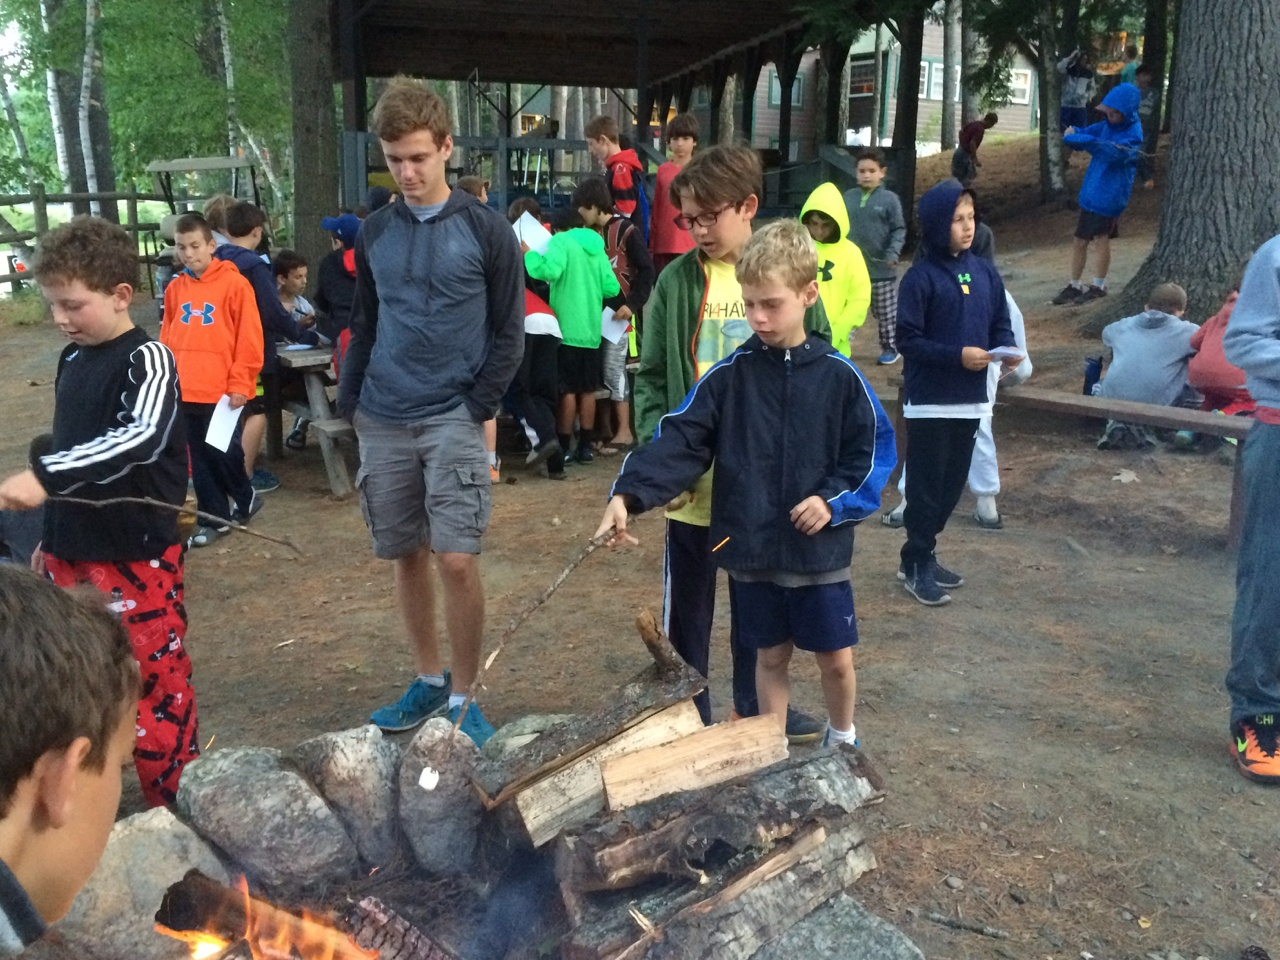 brother-sister overnight camp